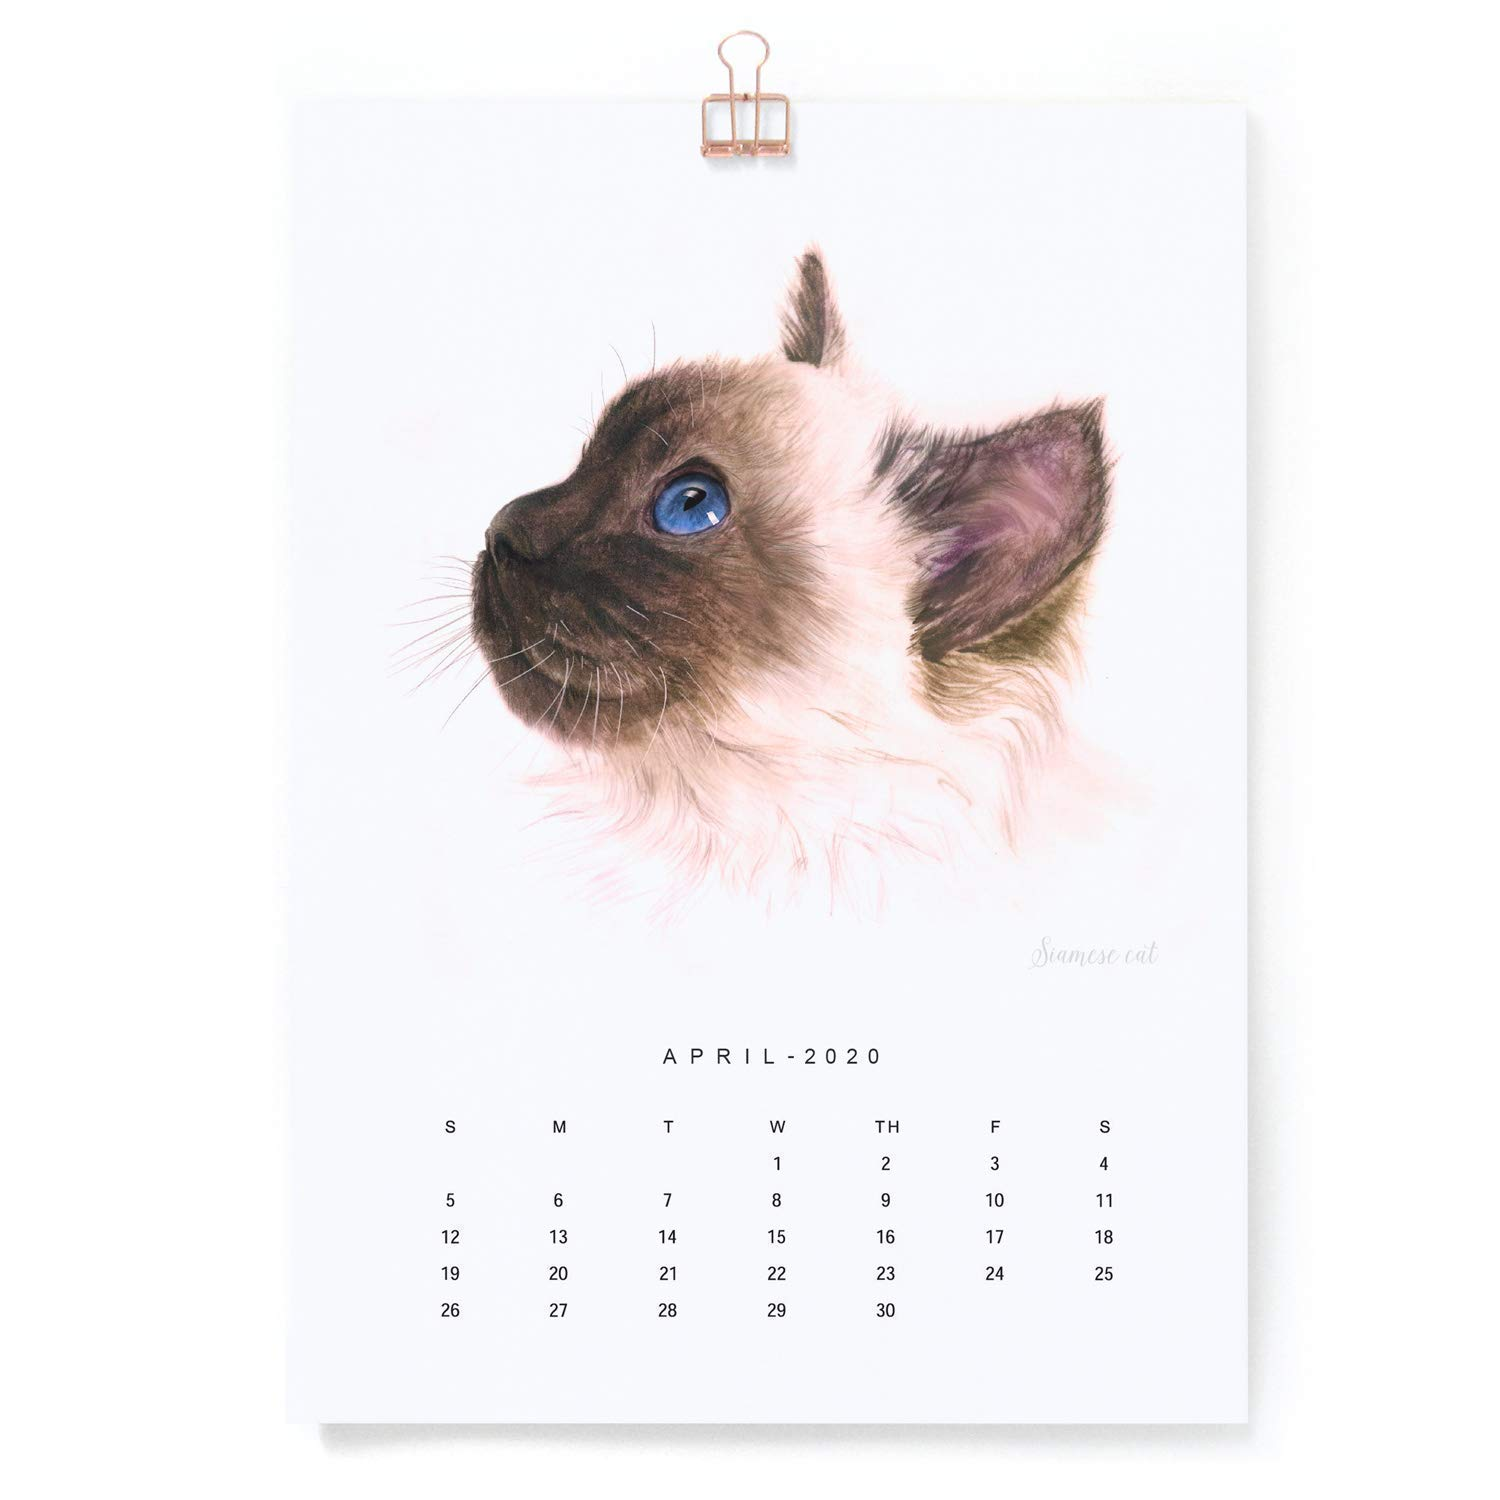 Gift for Cat Lover and kid ready to hang 8.3 x 11.7 Inch 16 month Animal Art Wall Calendar Sep 2019 to Dec 2020 A4 Cat Watercolor Painting Calendar